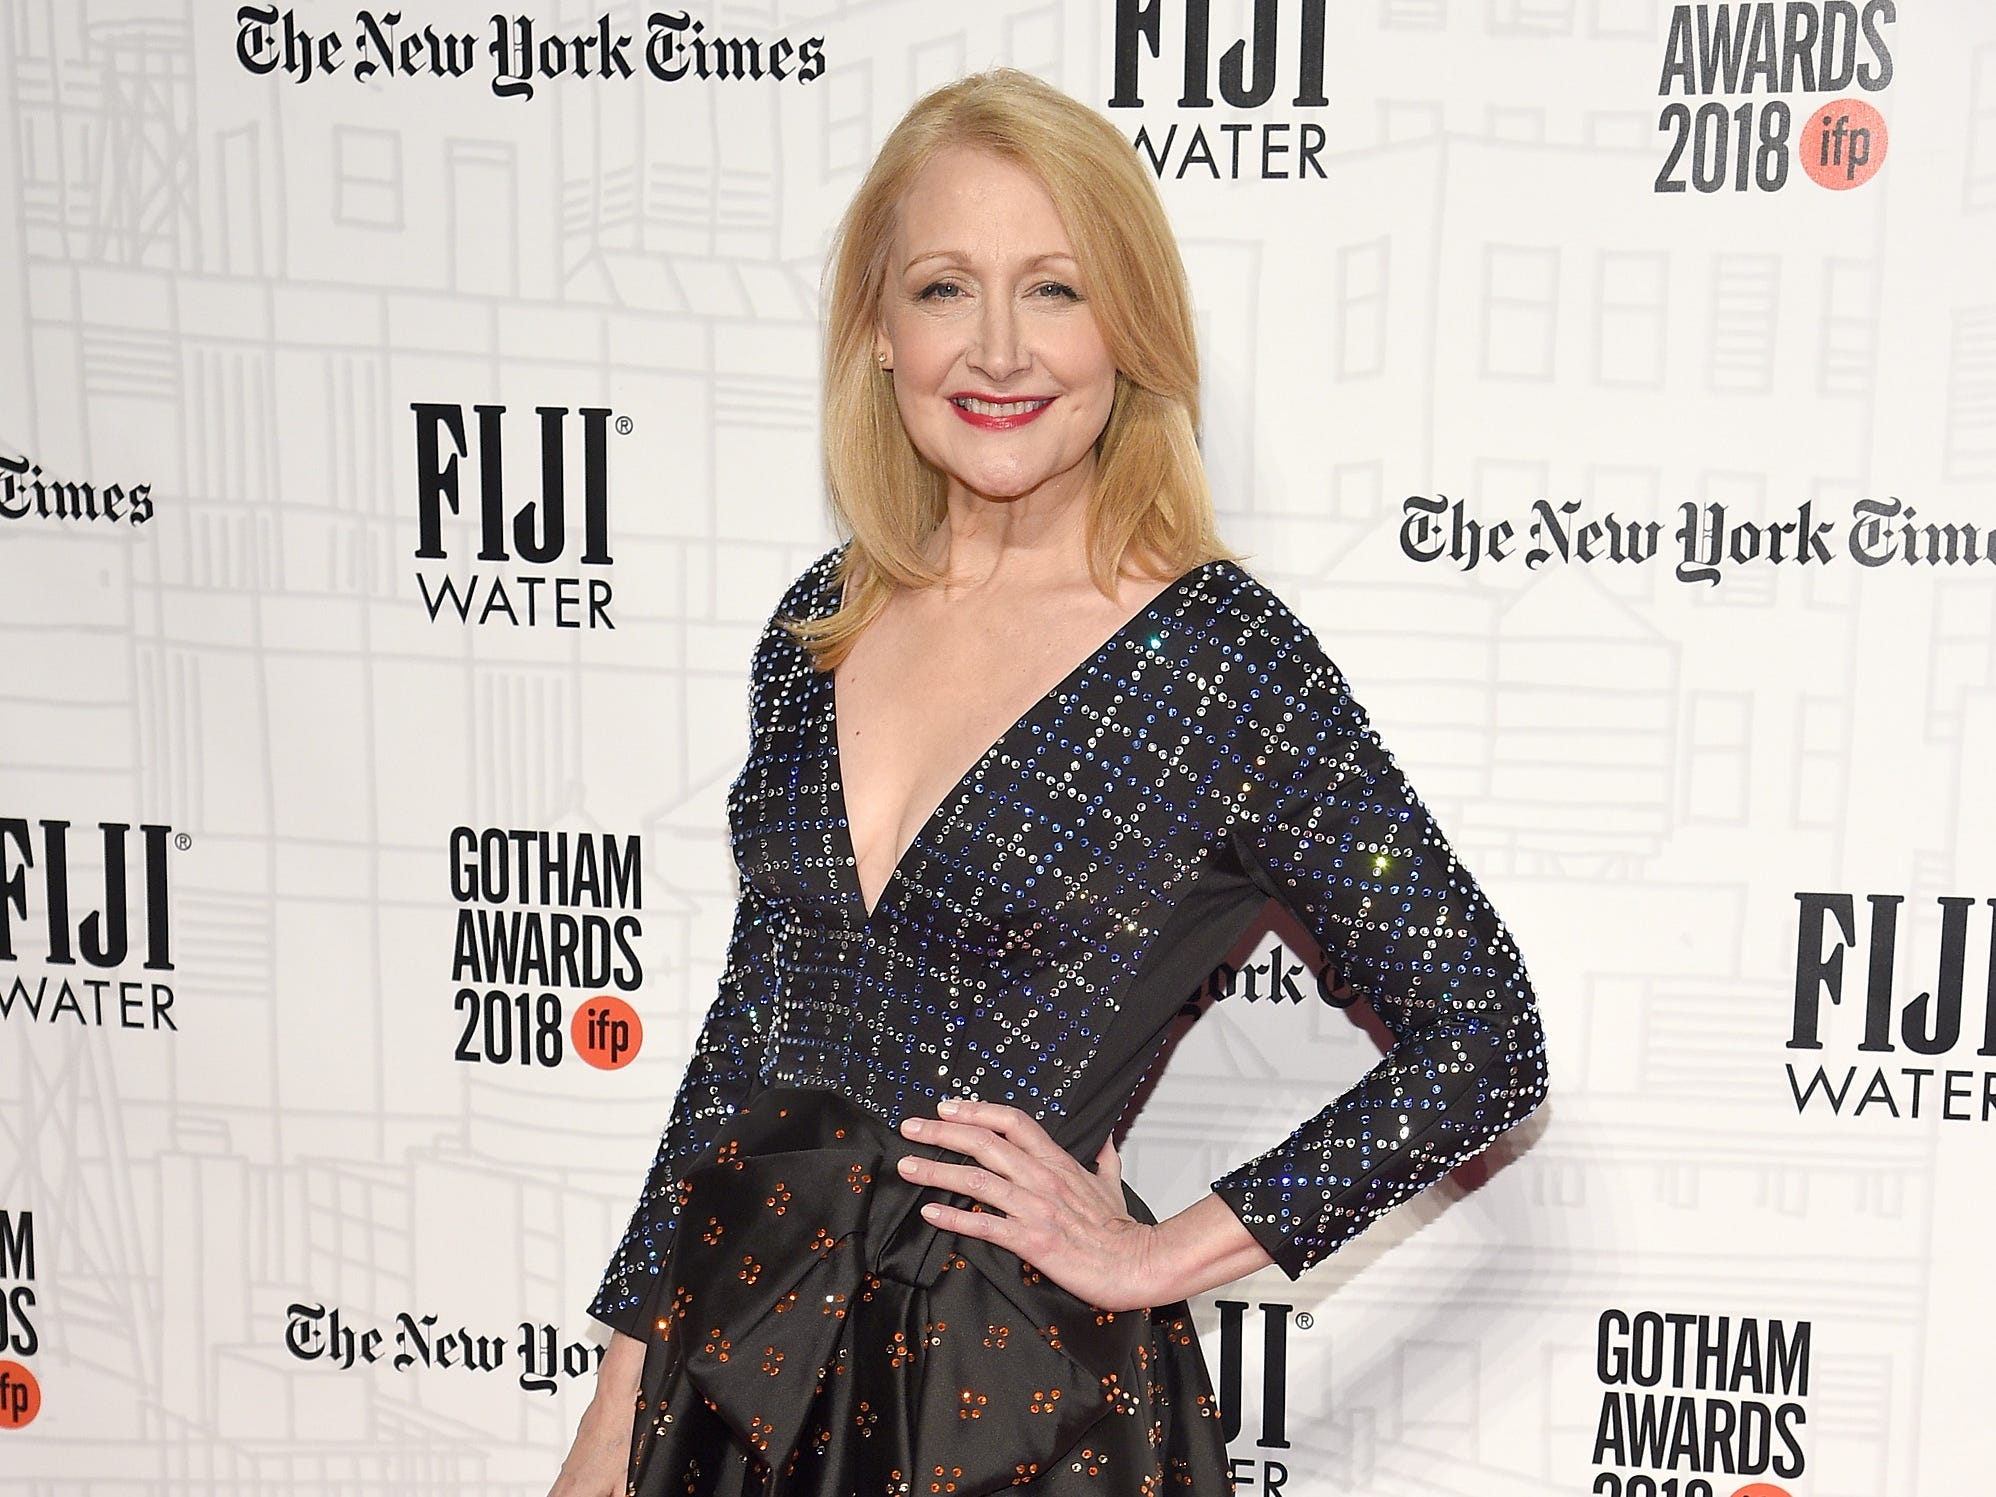 NEW YORK, NY - NOVEMBER 26: Patricia Clarkson attends IFP's 27th Annual Gotham Independent Film Awards at Cipriani, Wall Street on November 26, 2018 in New York City.  (Photo by Dimitrios Kambouris/Getty Images for IFP) ORG XMIT: 775261541 ORIG FILE ID: 1065562658